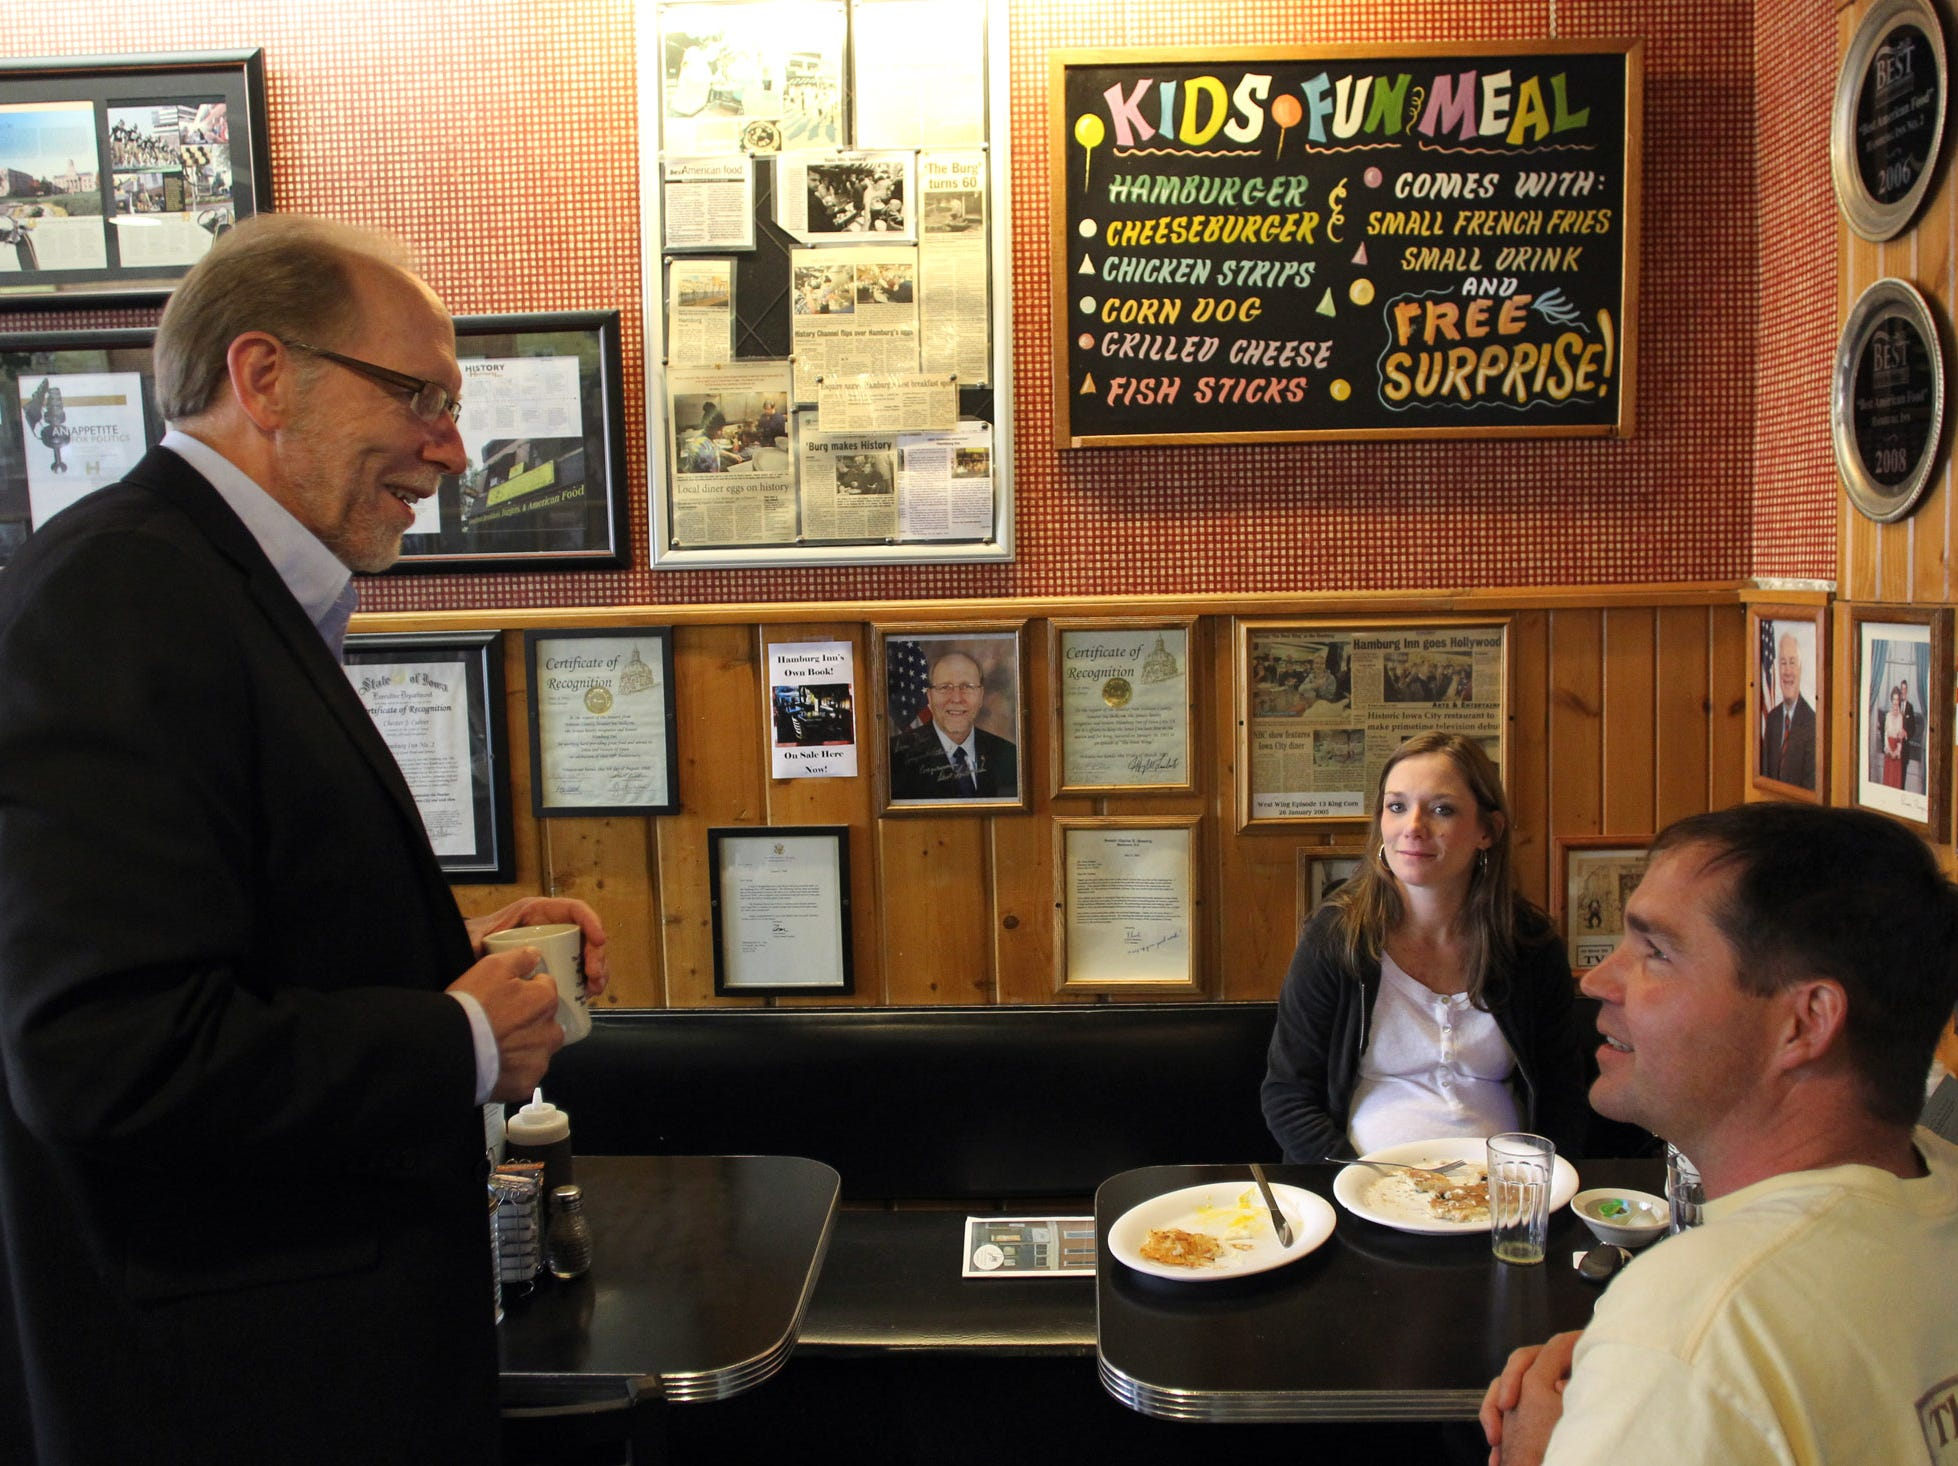 Rep. Dave Loebsack, D-Iowa, chats with Bree and Eric Colsch of North Liberty at Hamburg Inn on Thursday, Oct. 4, 2012.